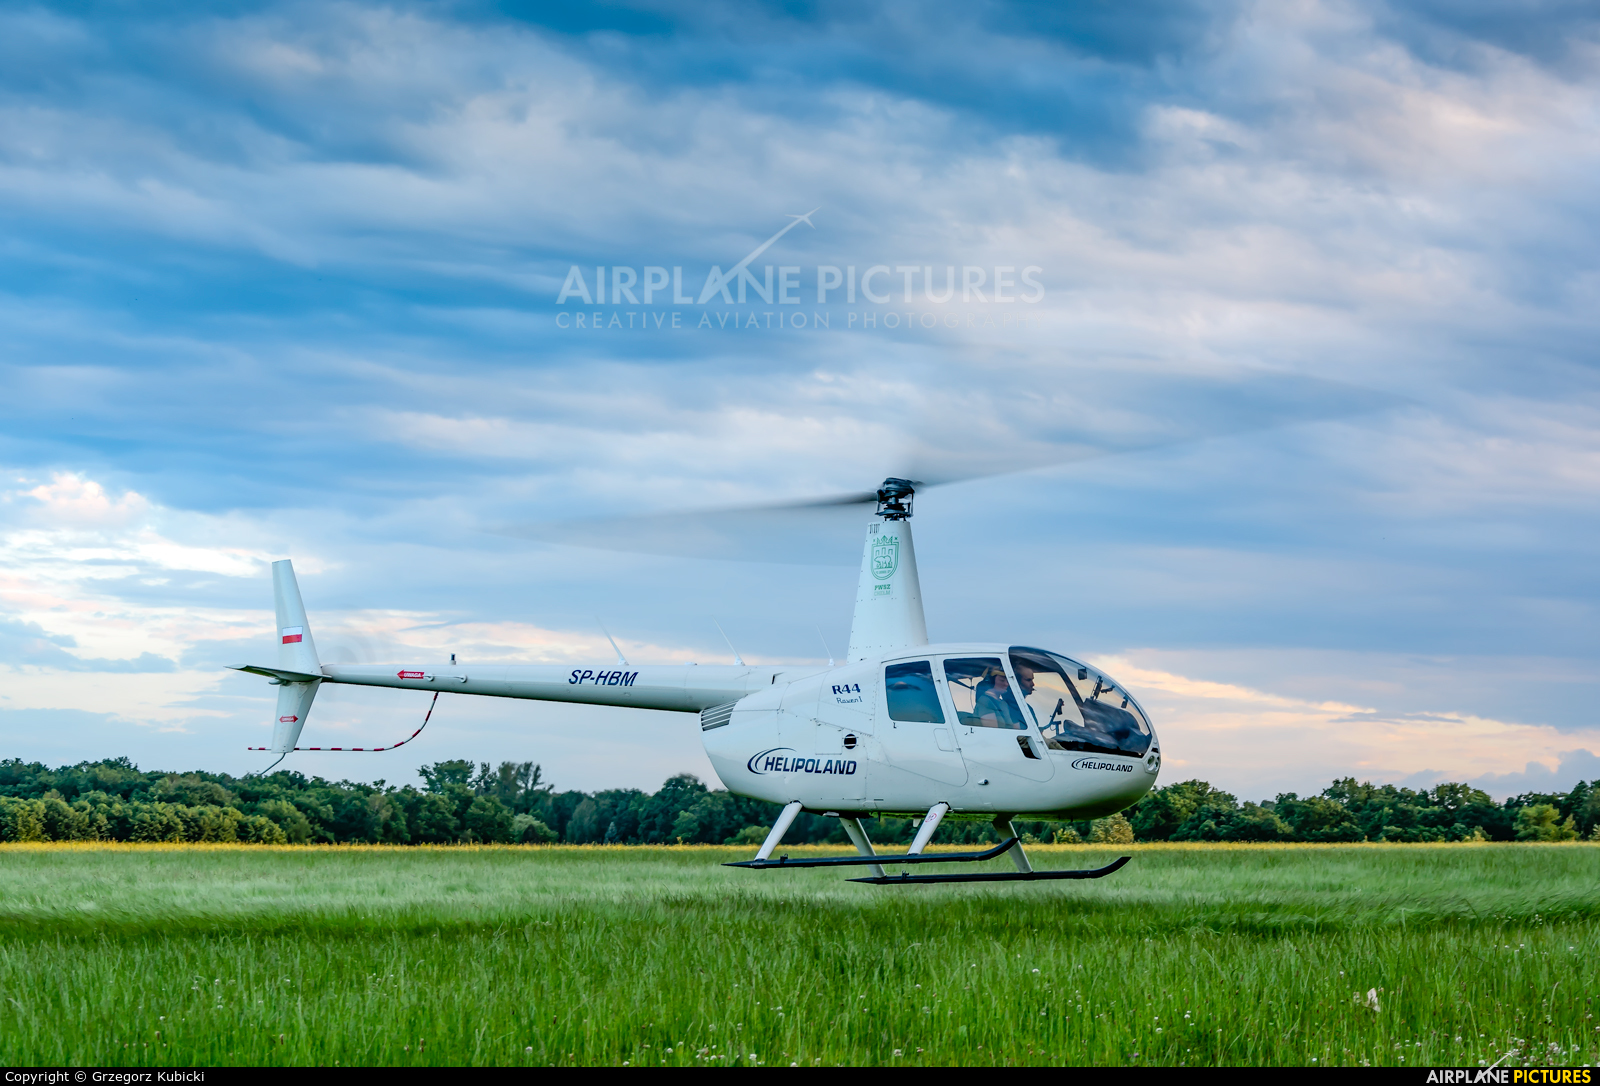 Helipoland SP-HBM aircraft at Katowice Muchowiec